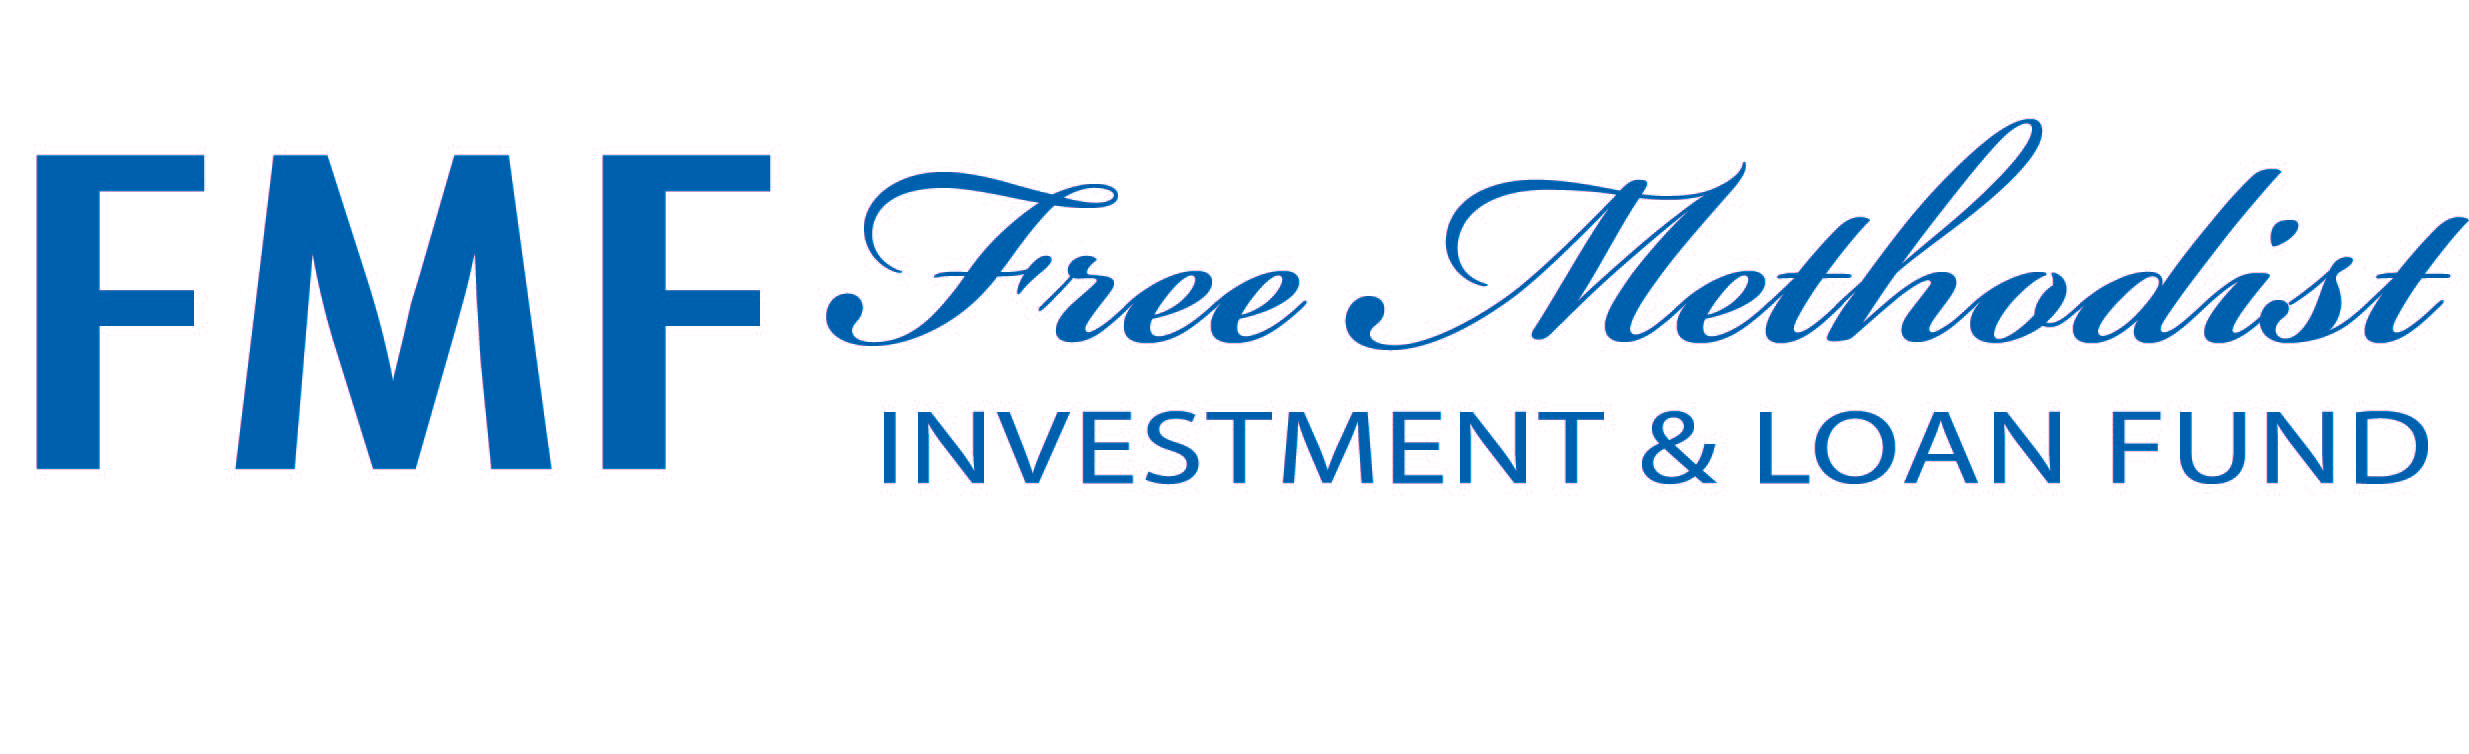 Free Methodist Investment & Loan Fund